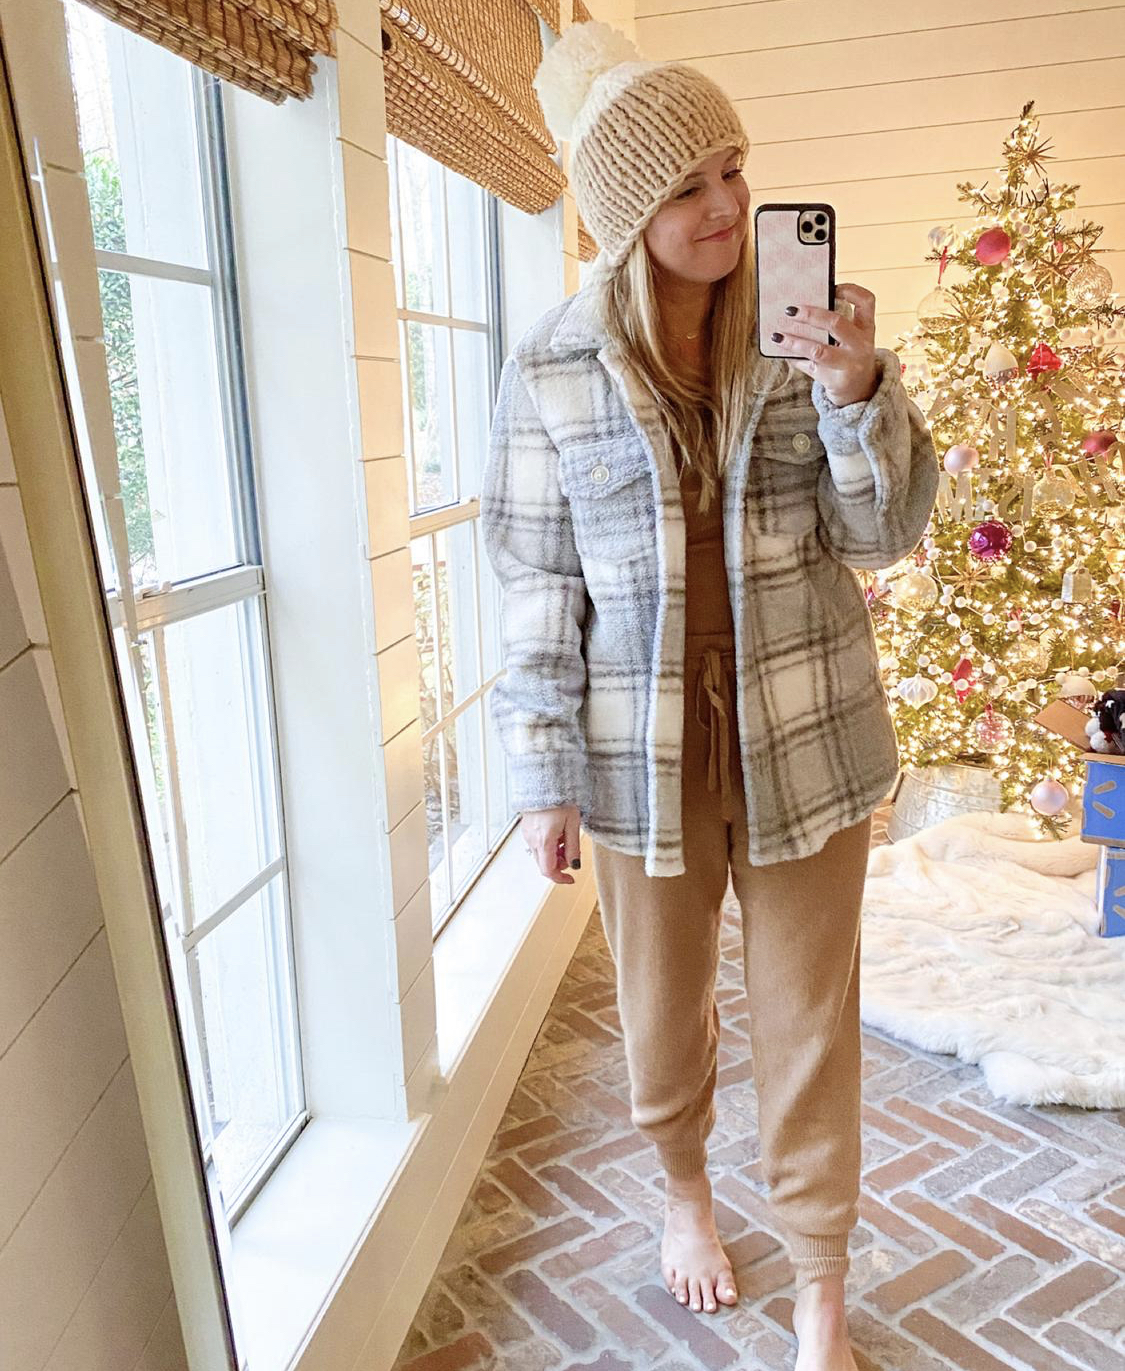 December Outfits by popular Houston fashion blog, Fancy Ashley: image of a woman standing in front of a Christmas tree decorated with pink, white and silver ornaments and wearing a tan and white pom beaning, tan sweater set, and grey and white plaid fleece jacket.